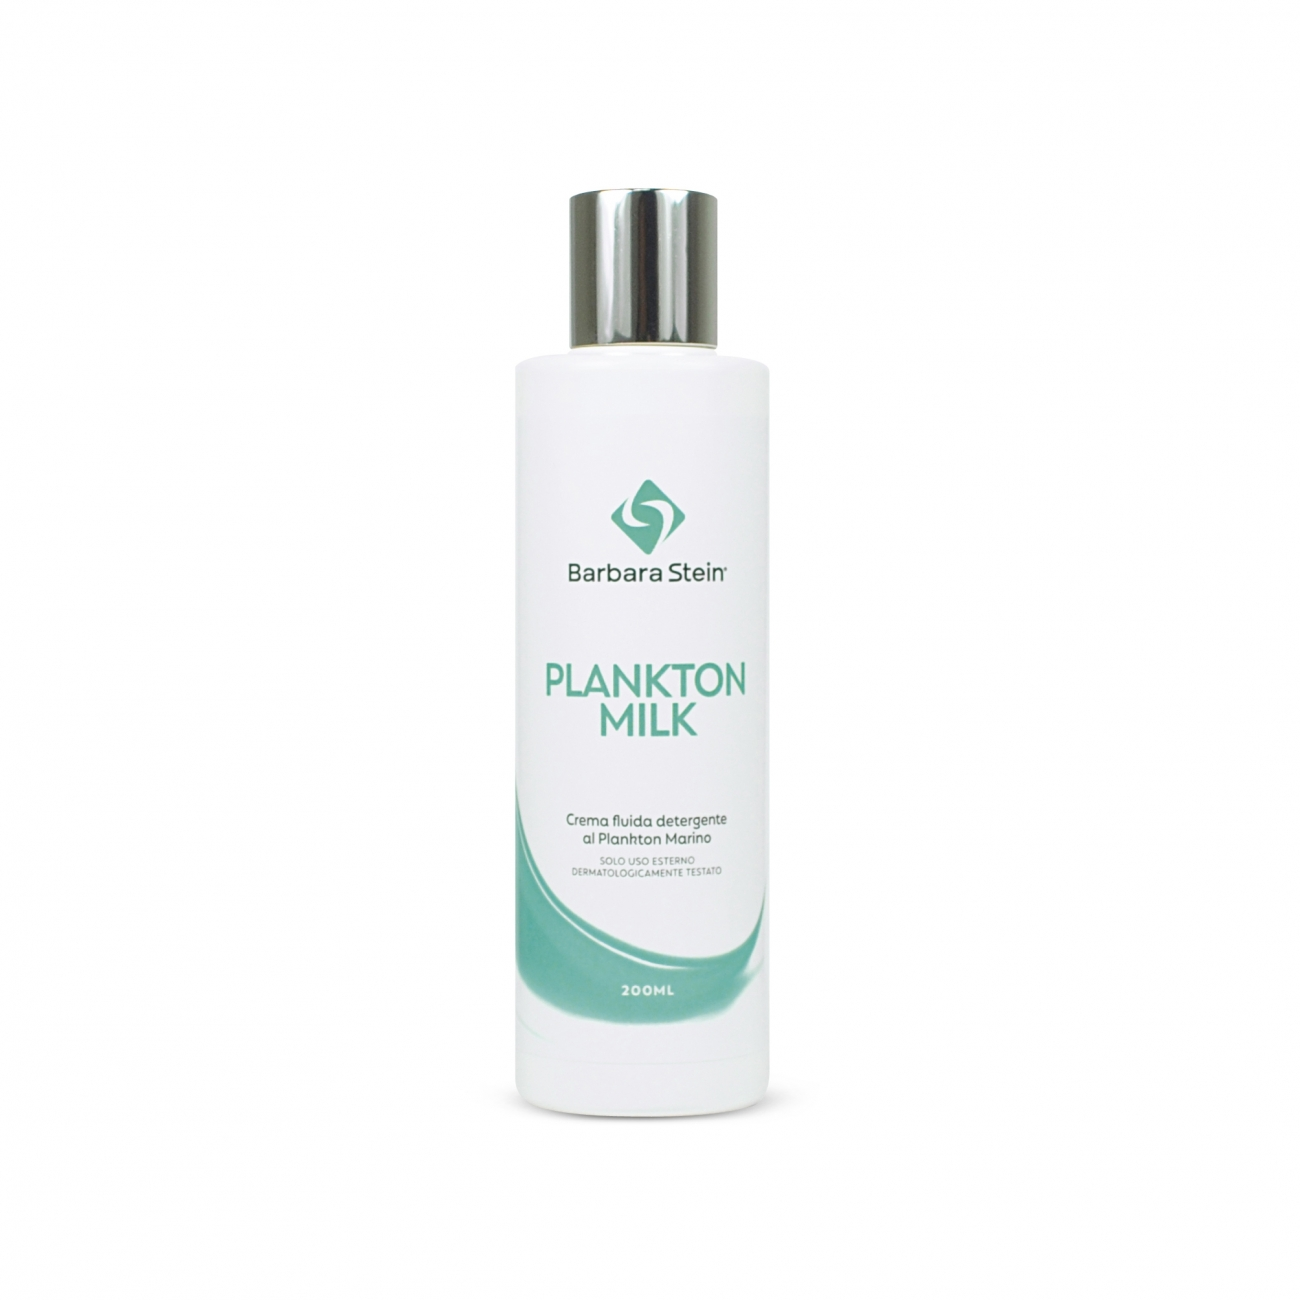 PLANKTON MILK (200 ml)